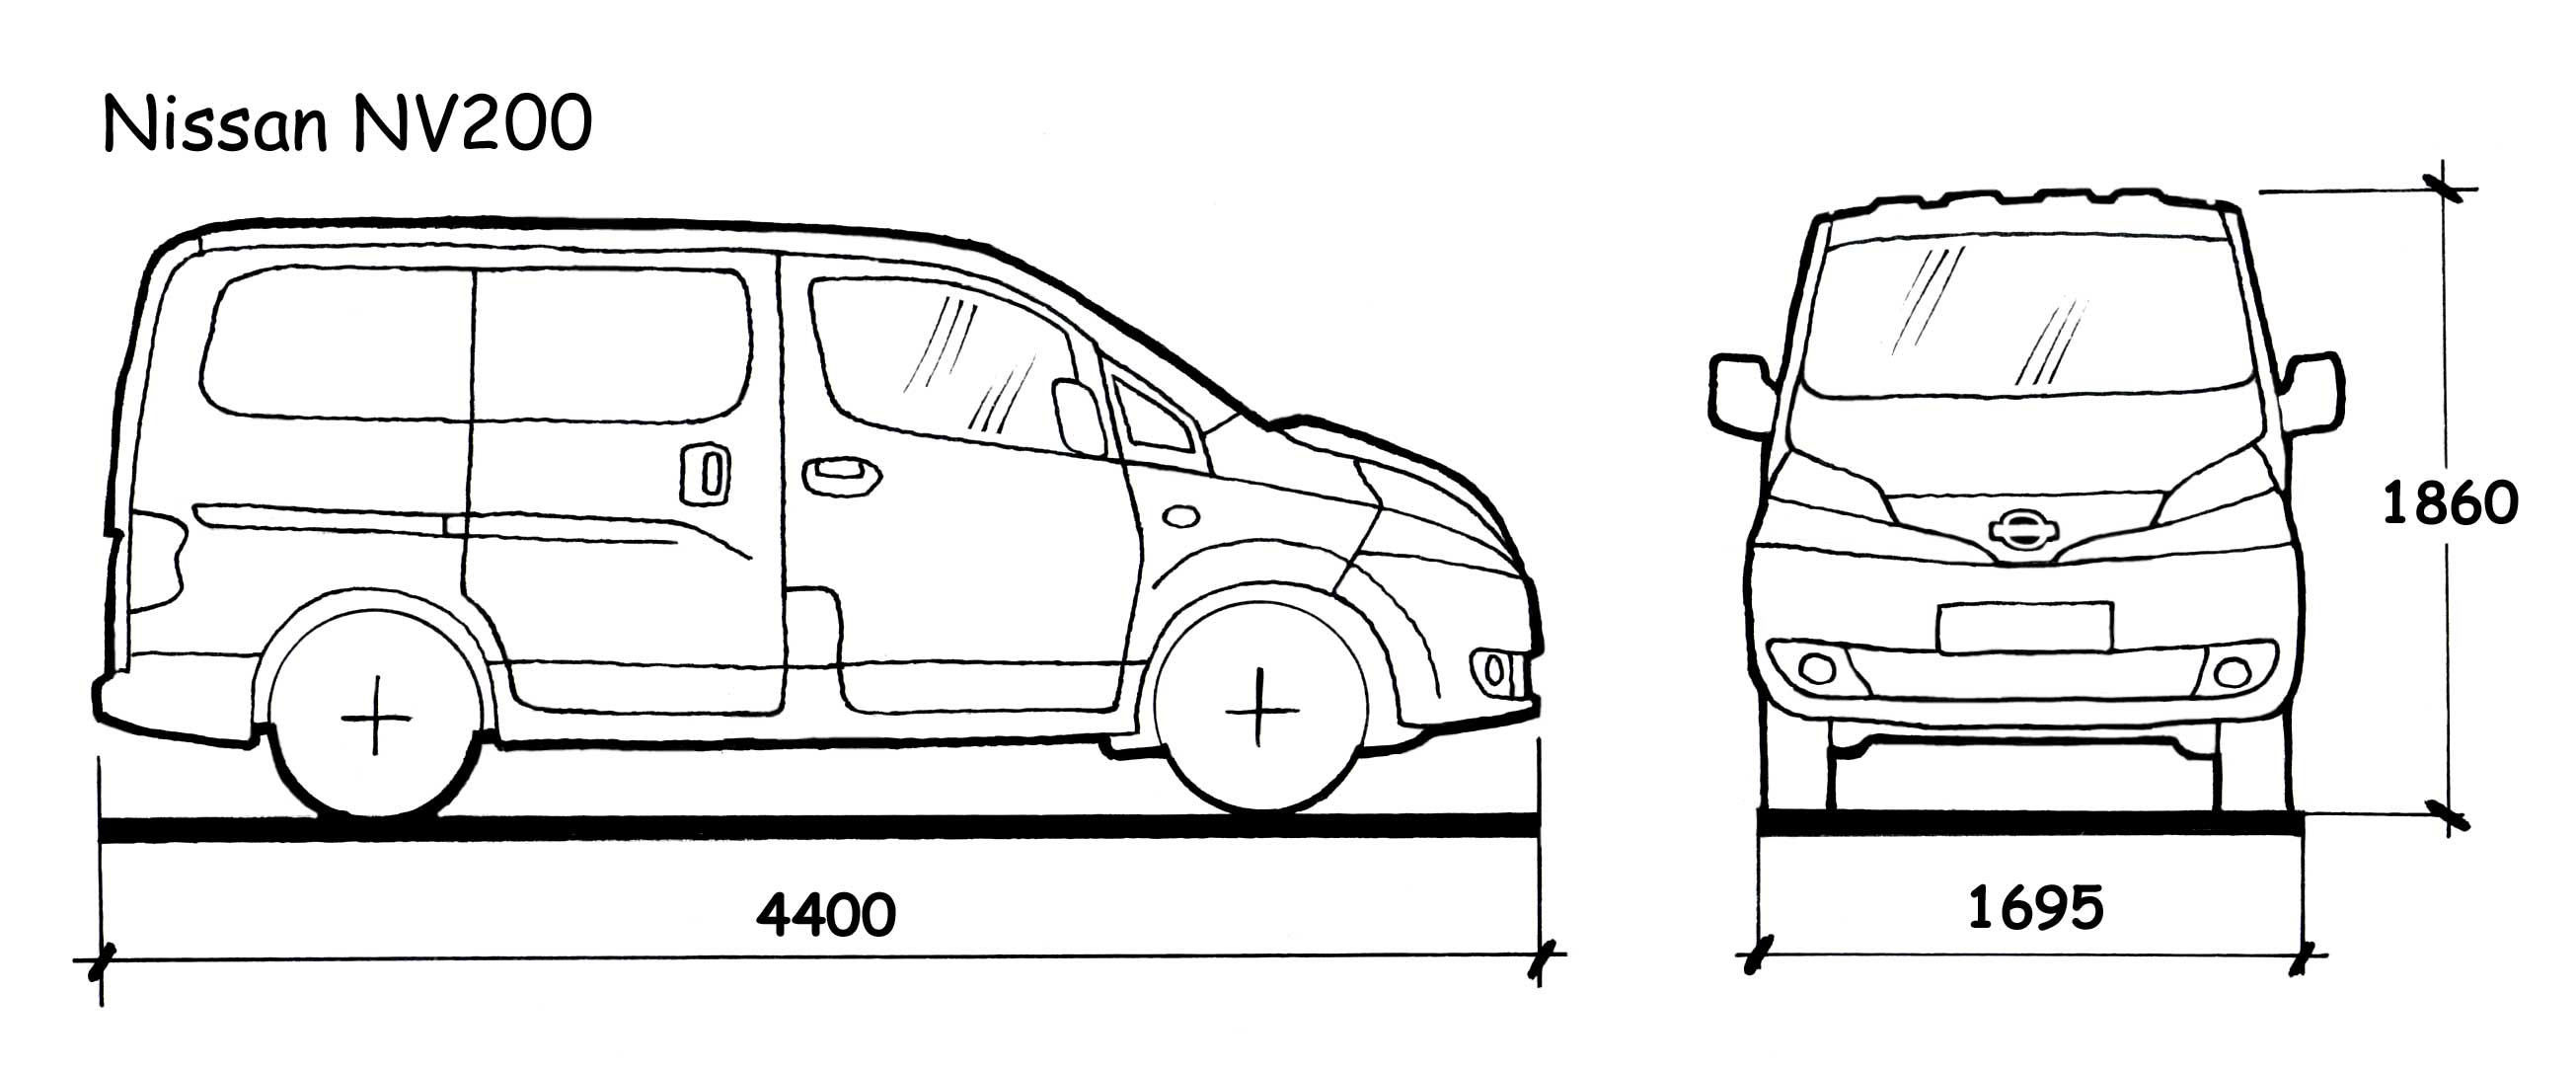 nissan nv200 fuse diagram